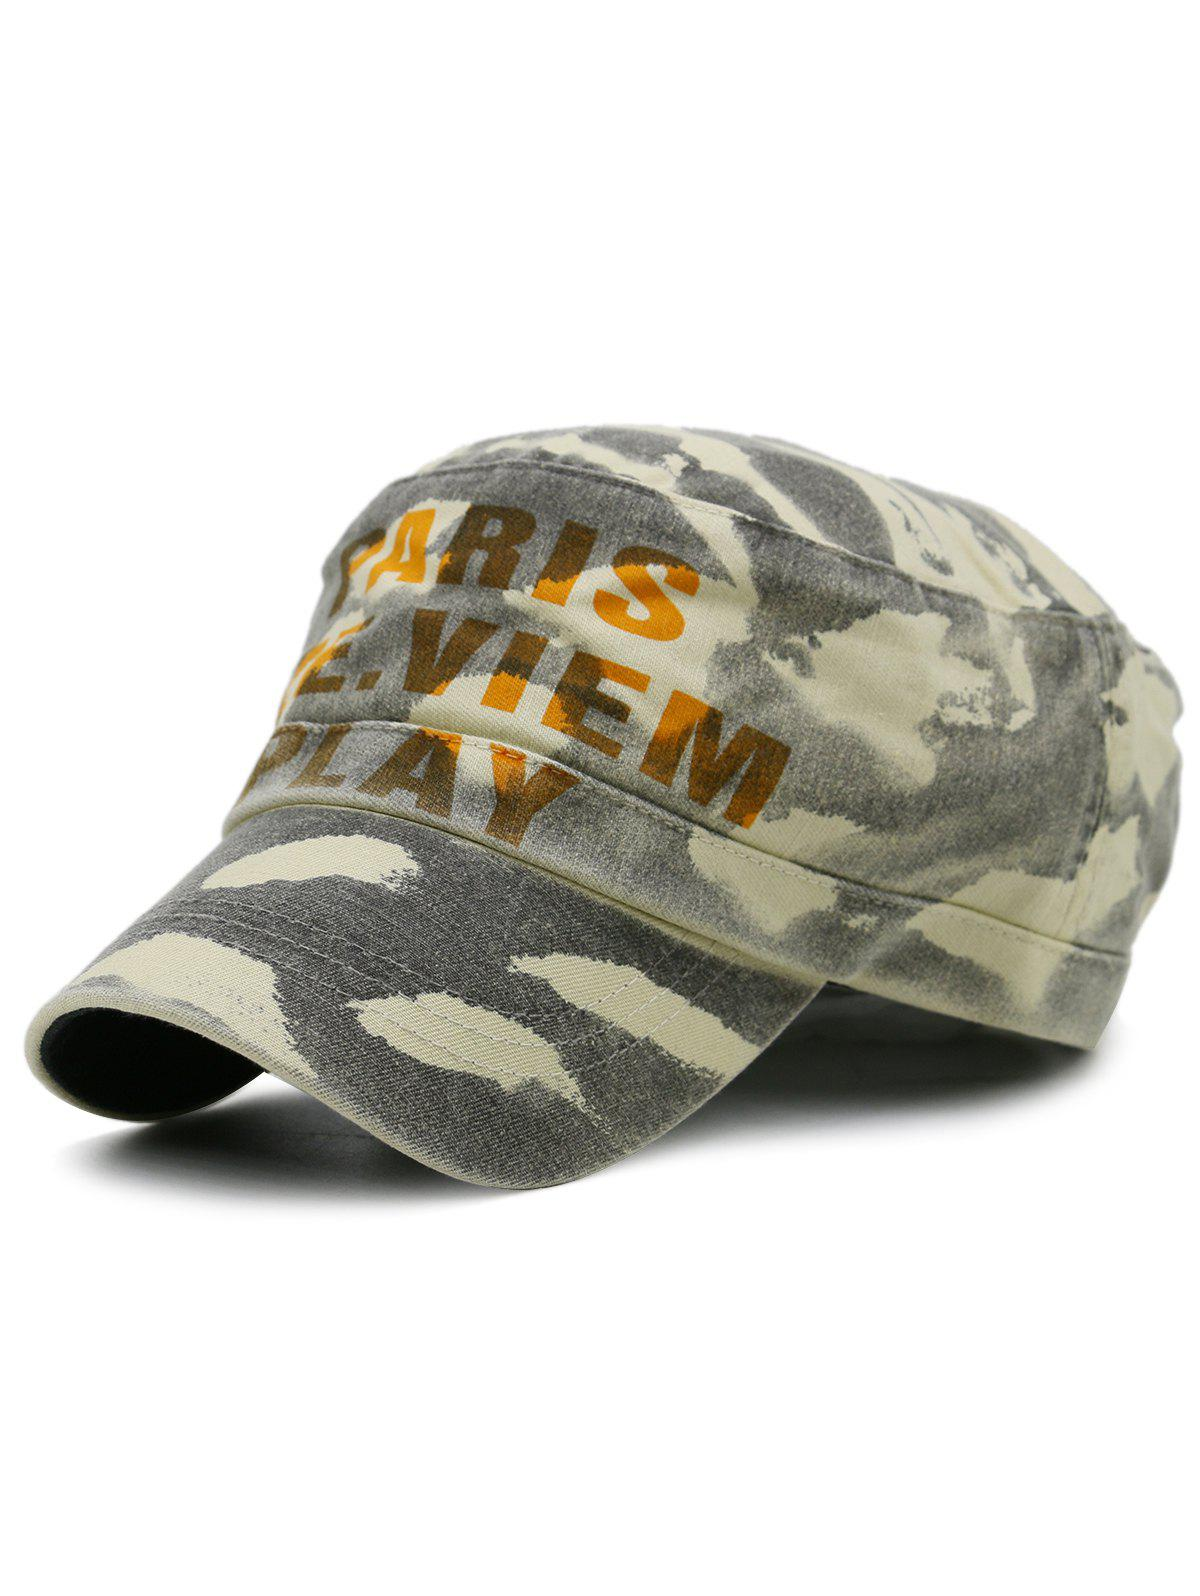 Buy Unique Camouflage Pattern Embellished Military Cap